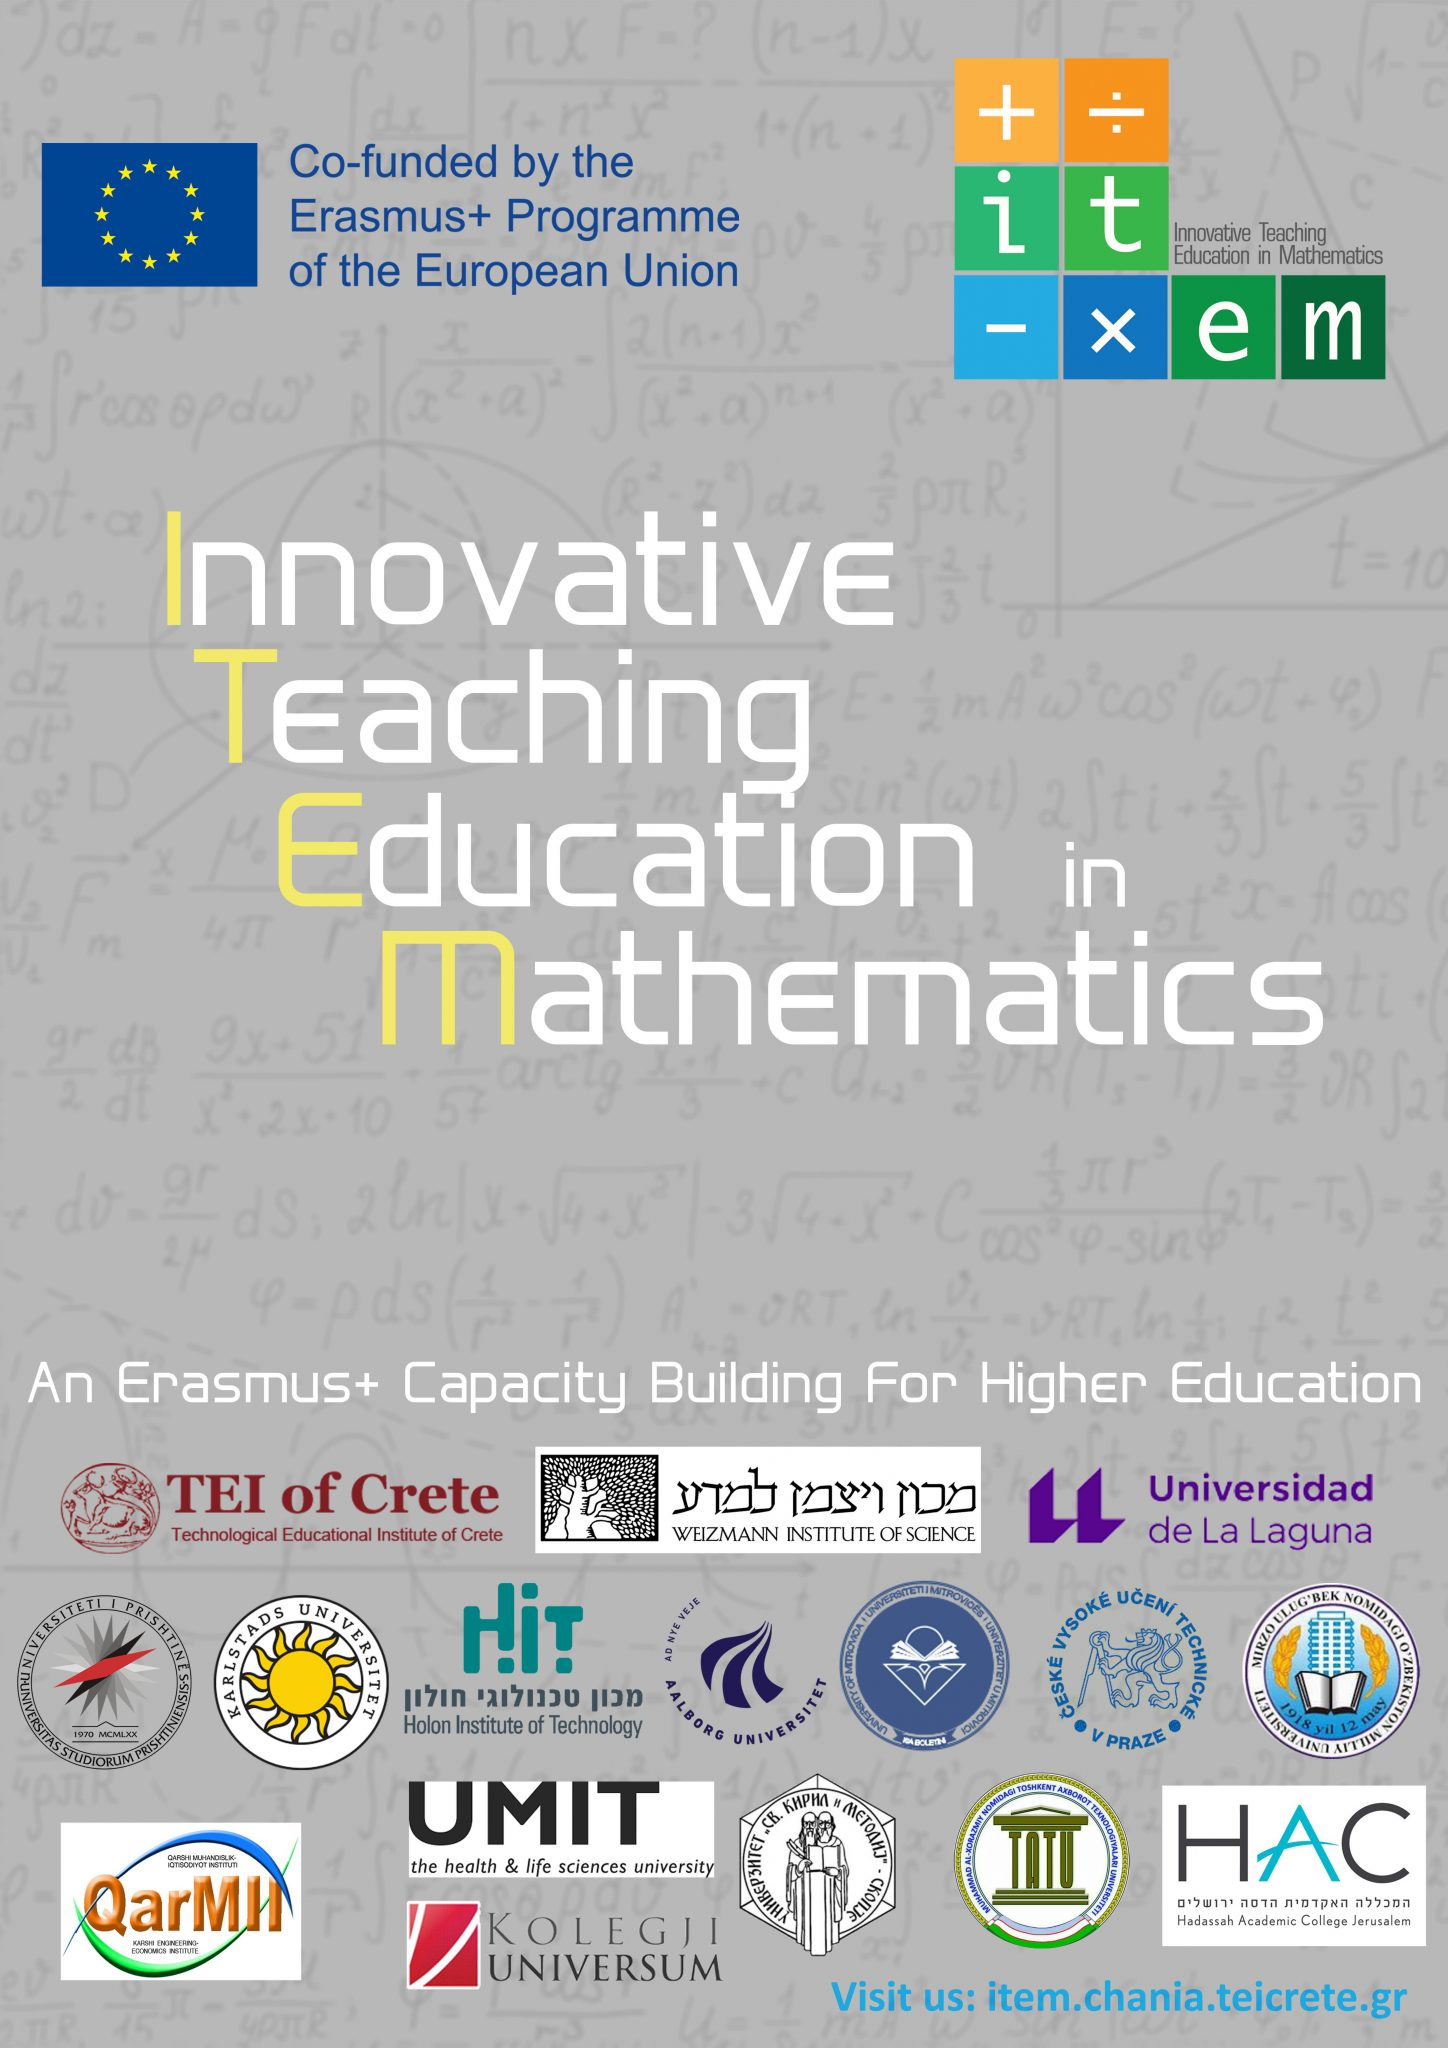 Innovative Teaching Education In Mathematics -ITEM